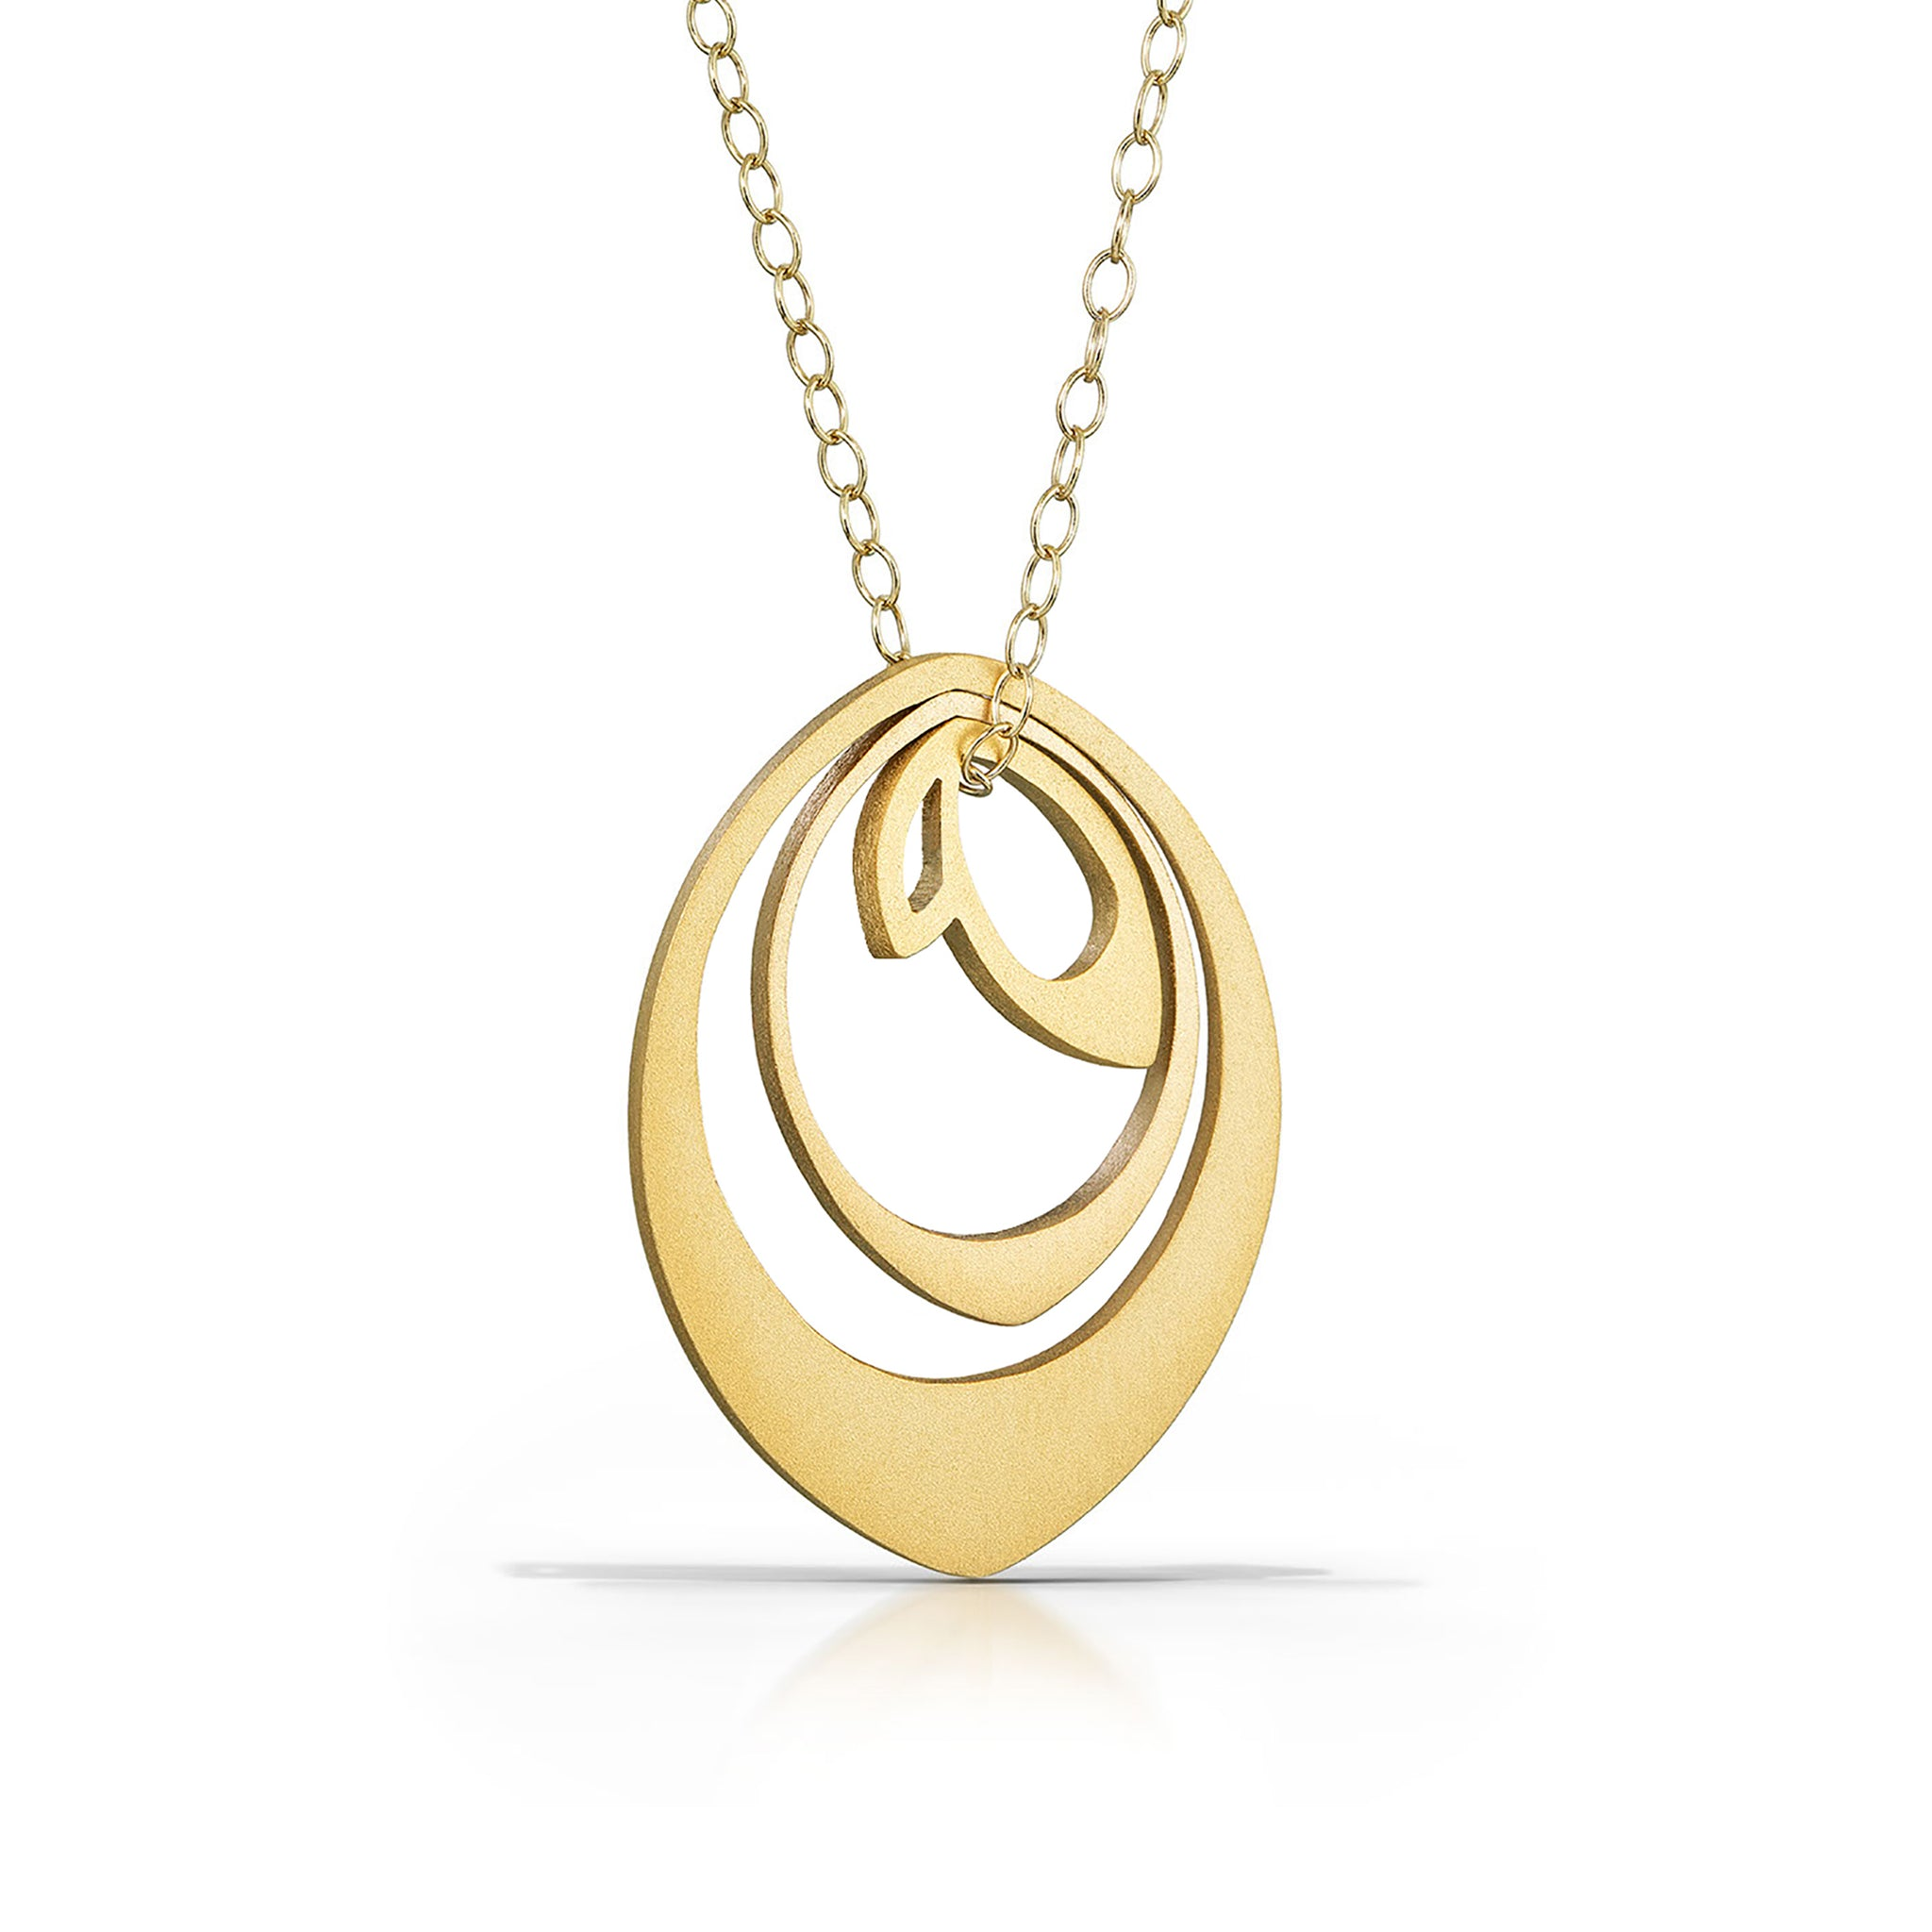 nesting bud necklace, 18k gold-plated